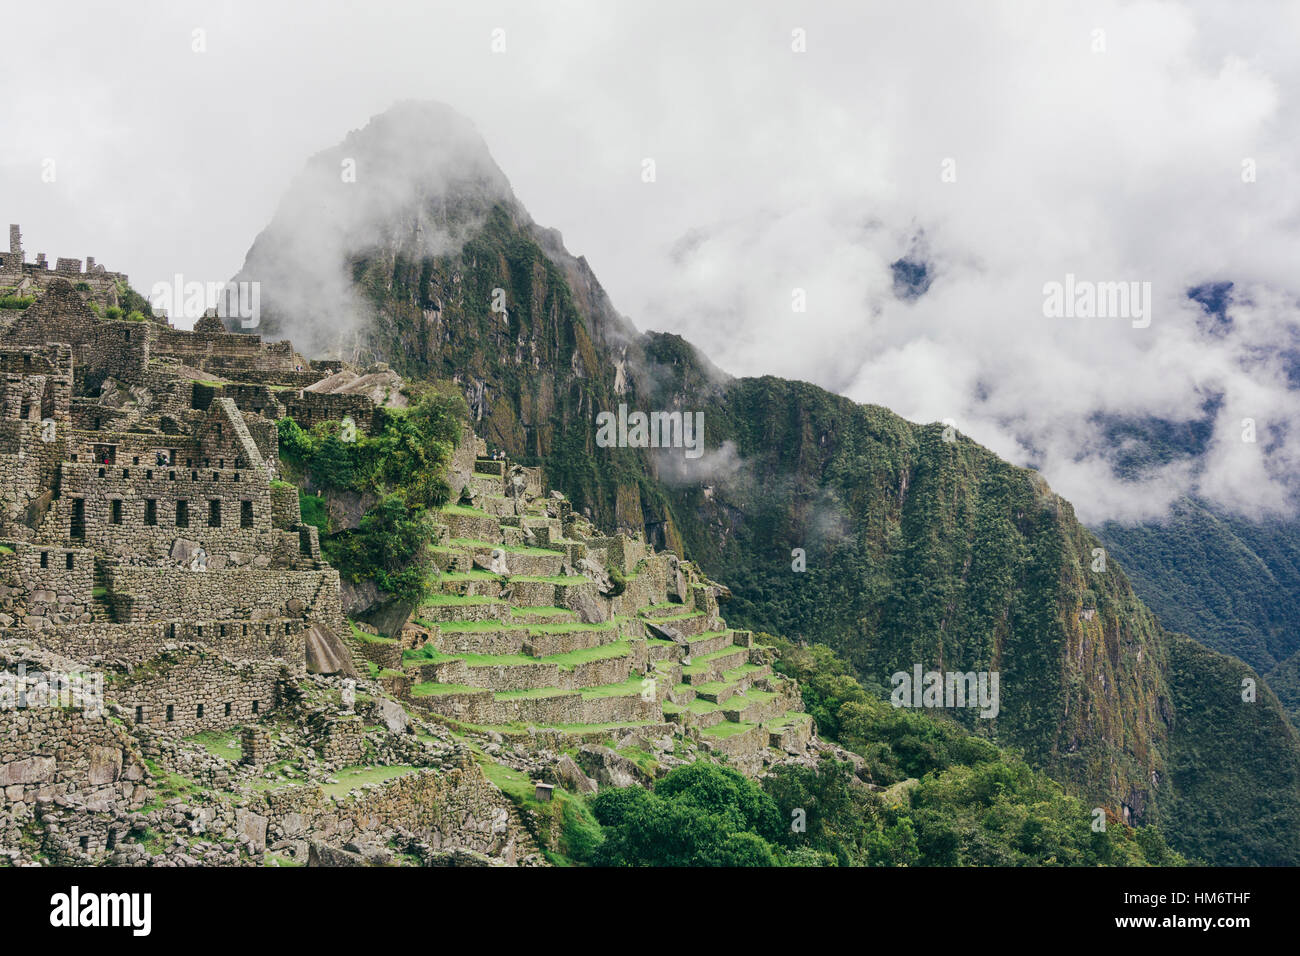 Scenic view of machu picchu with Mt huayna picchu during foggy weather - Stock Image